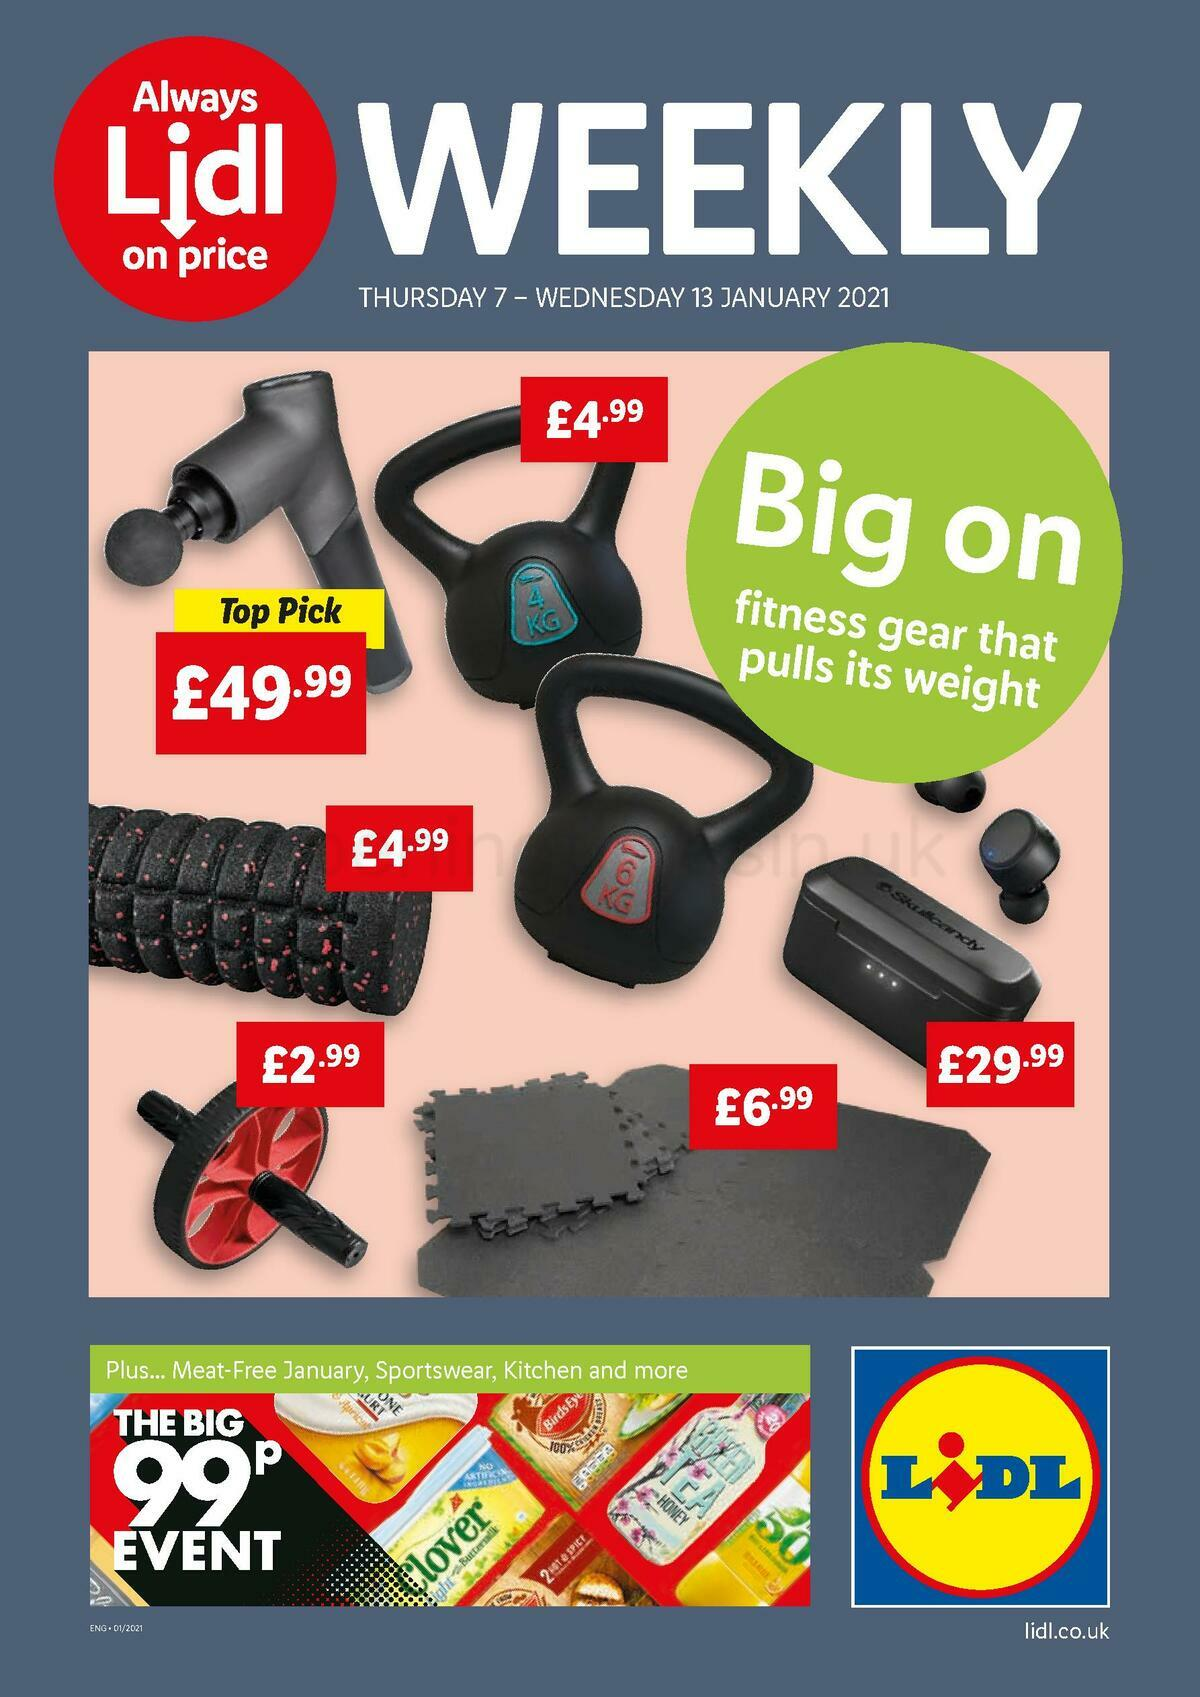 LIDL Offers from January 7